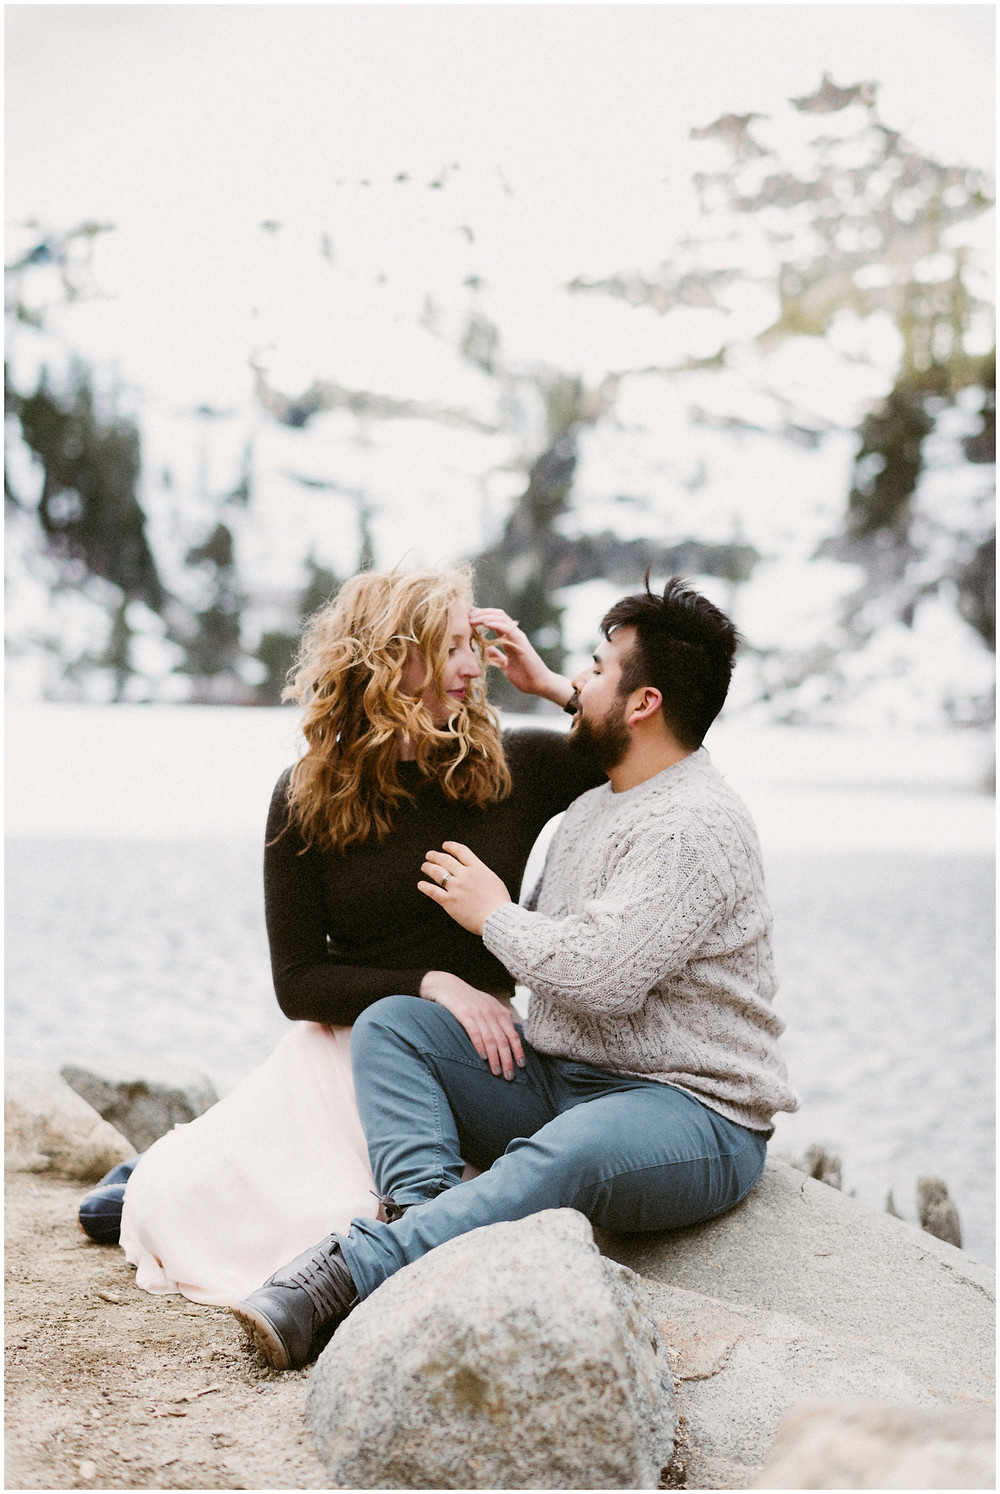 Windy couples session at Eagle Lake in Lake Tahoe, California